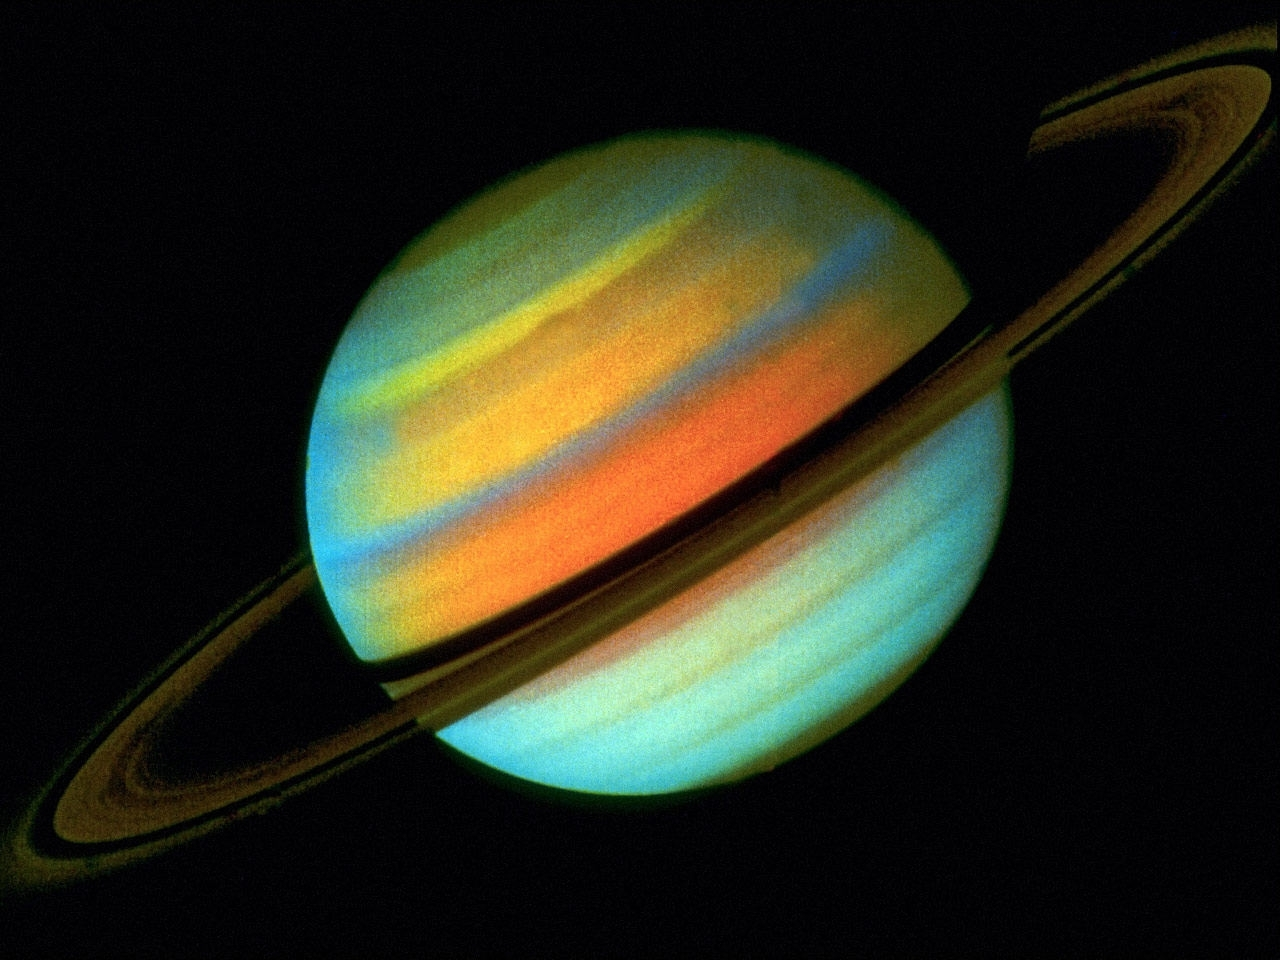 45646 download wallpaper Fantasy, Planets, Universe screensavers and pictures for free